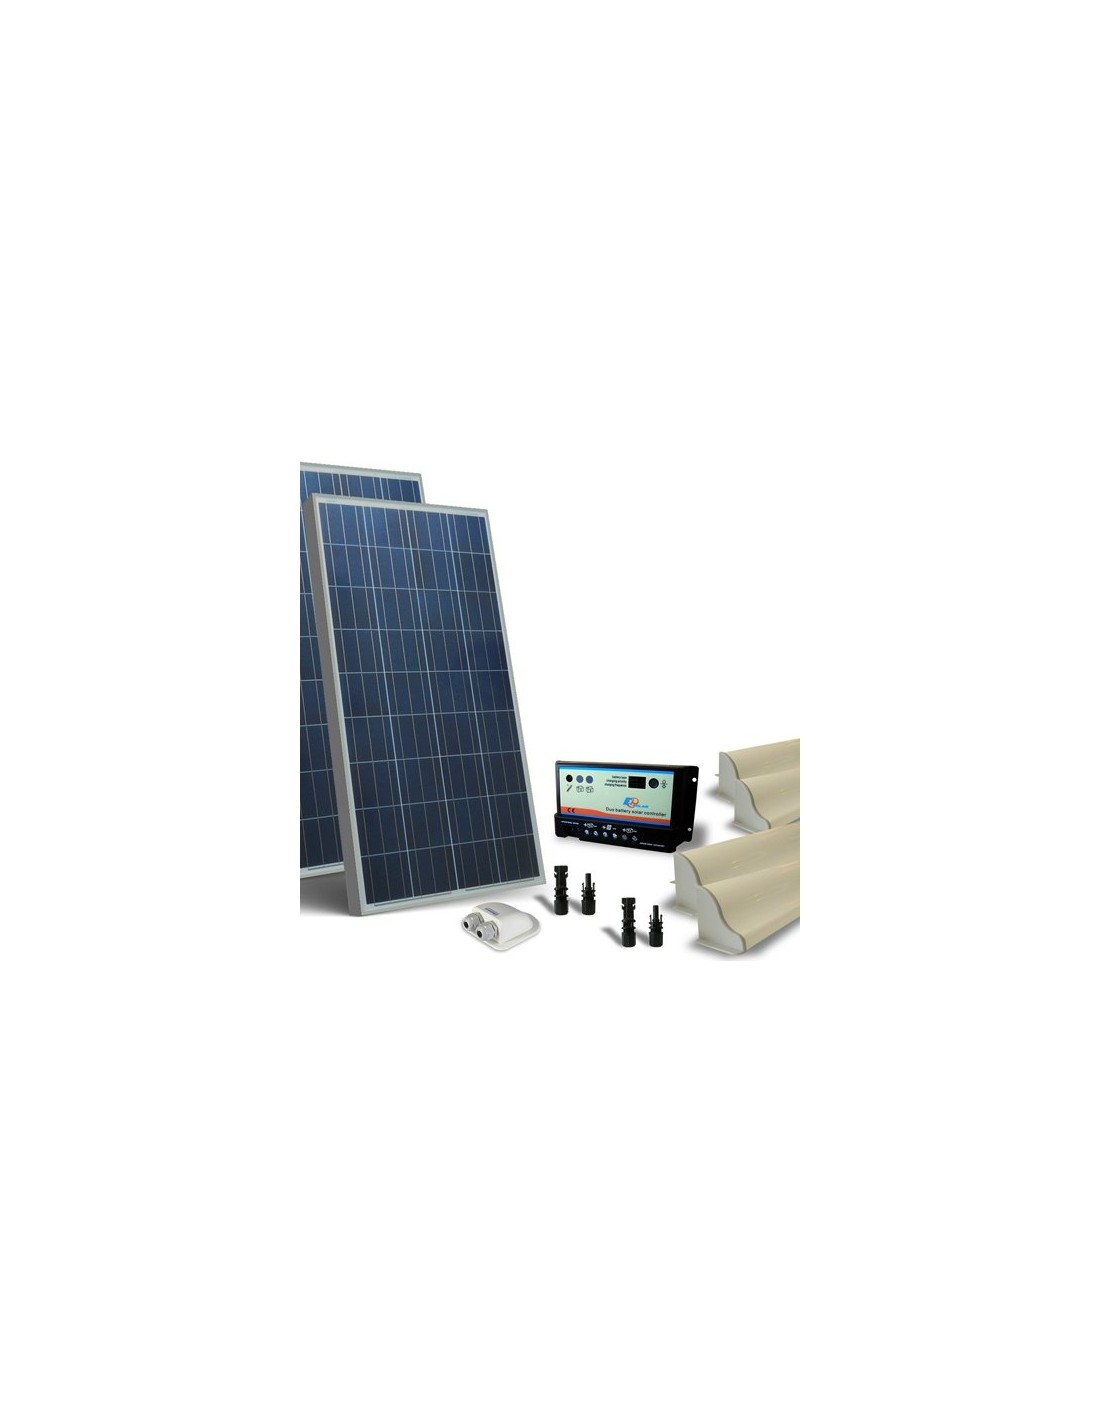 ... solar kit camper 260w 12v base photovoltaic panel the solar kit camper